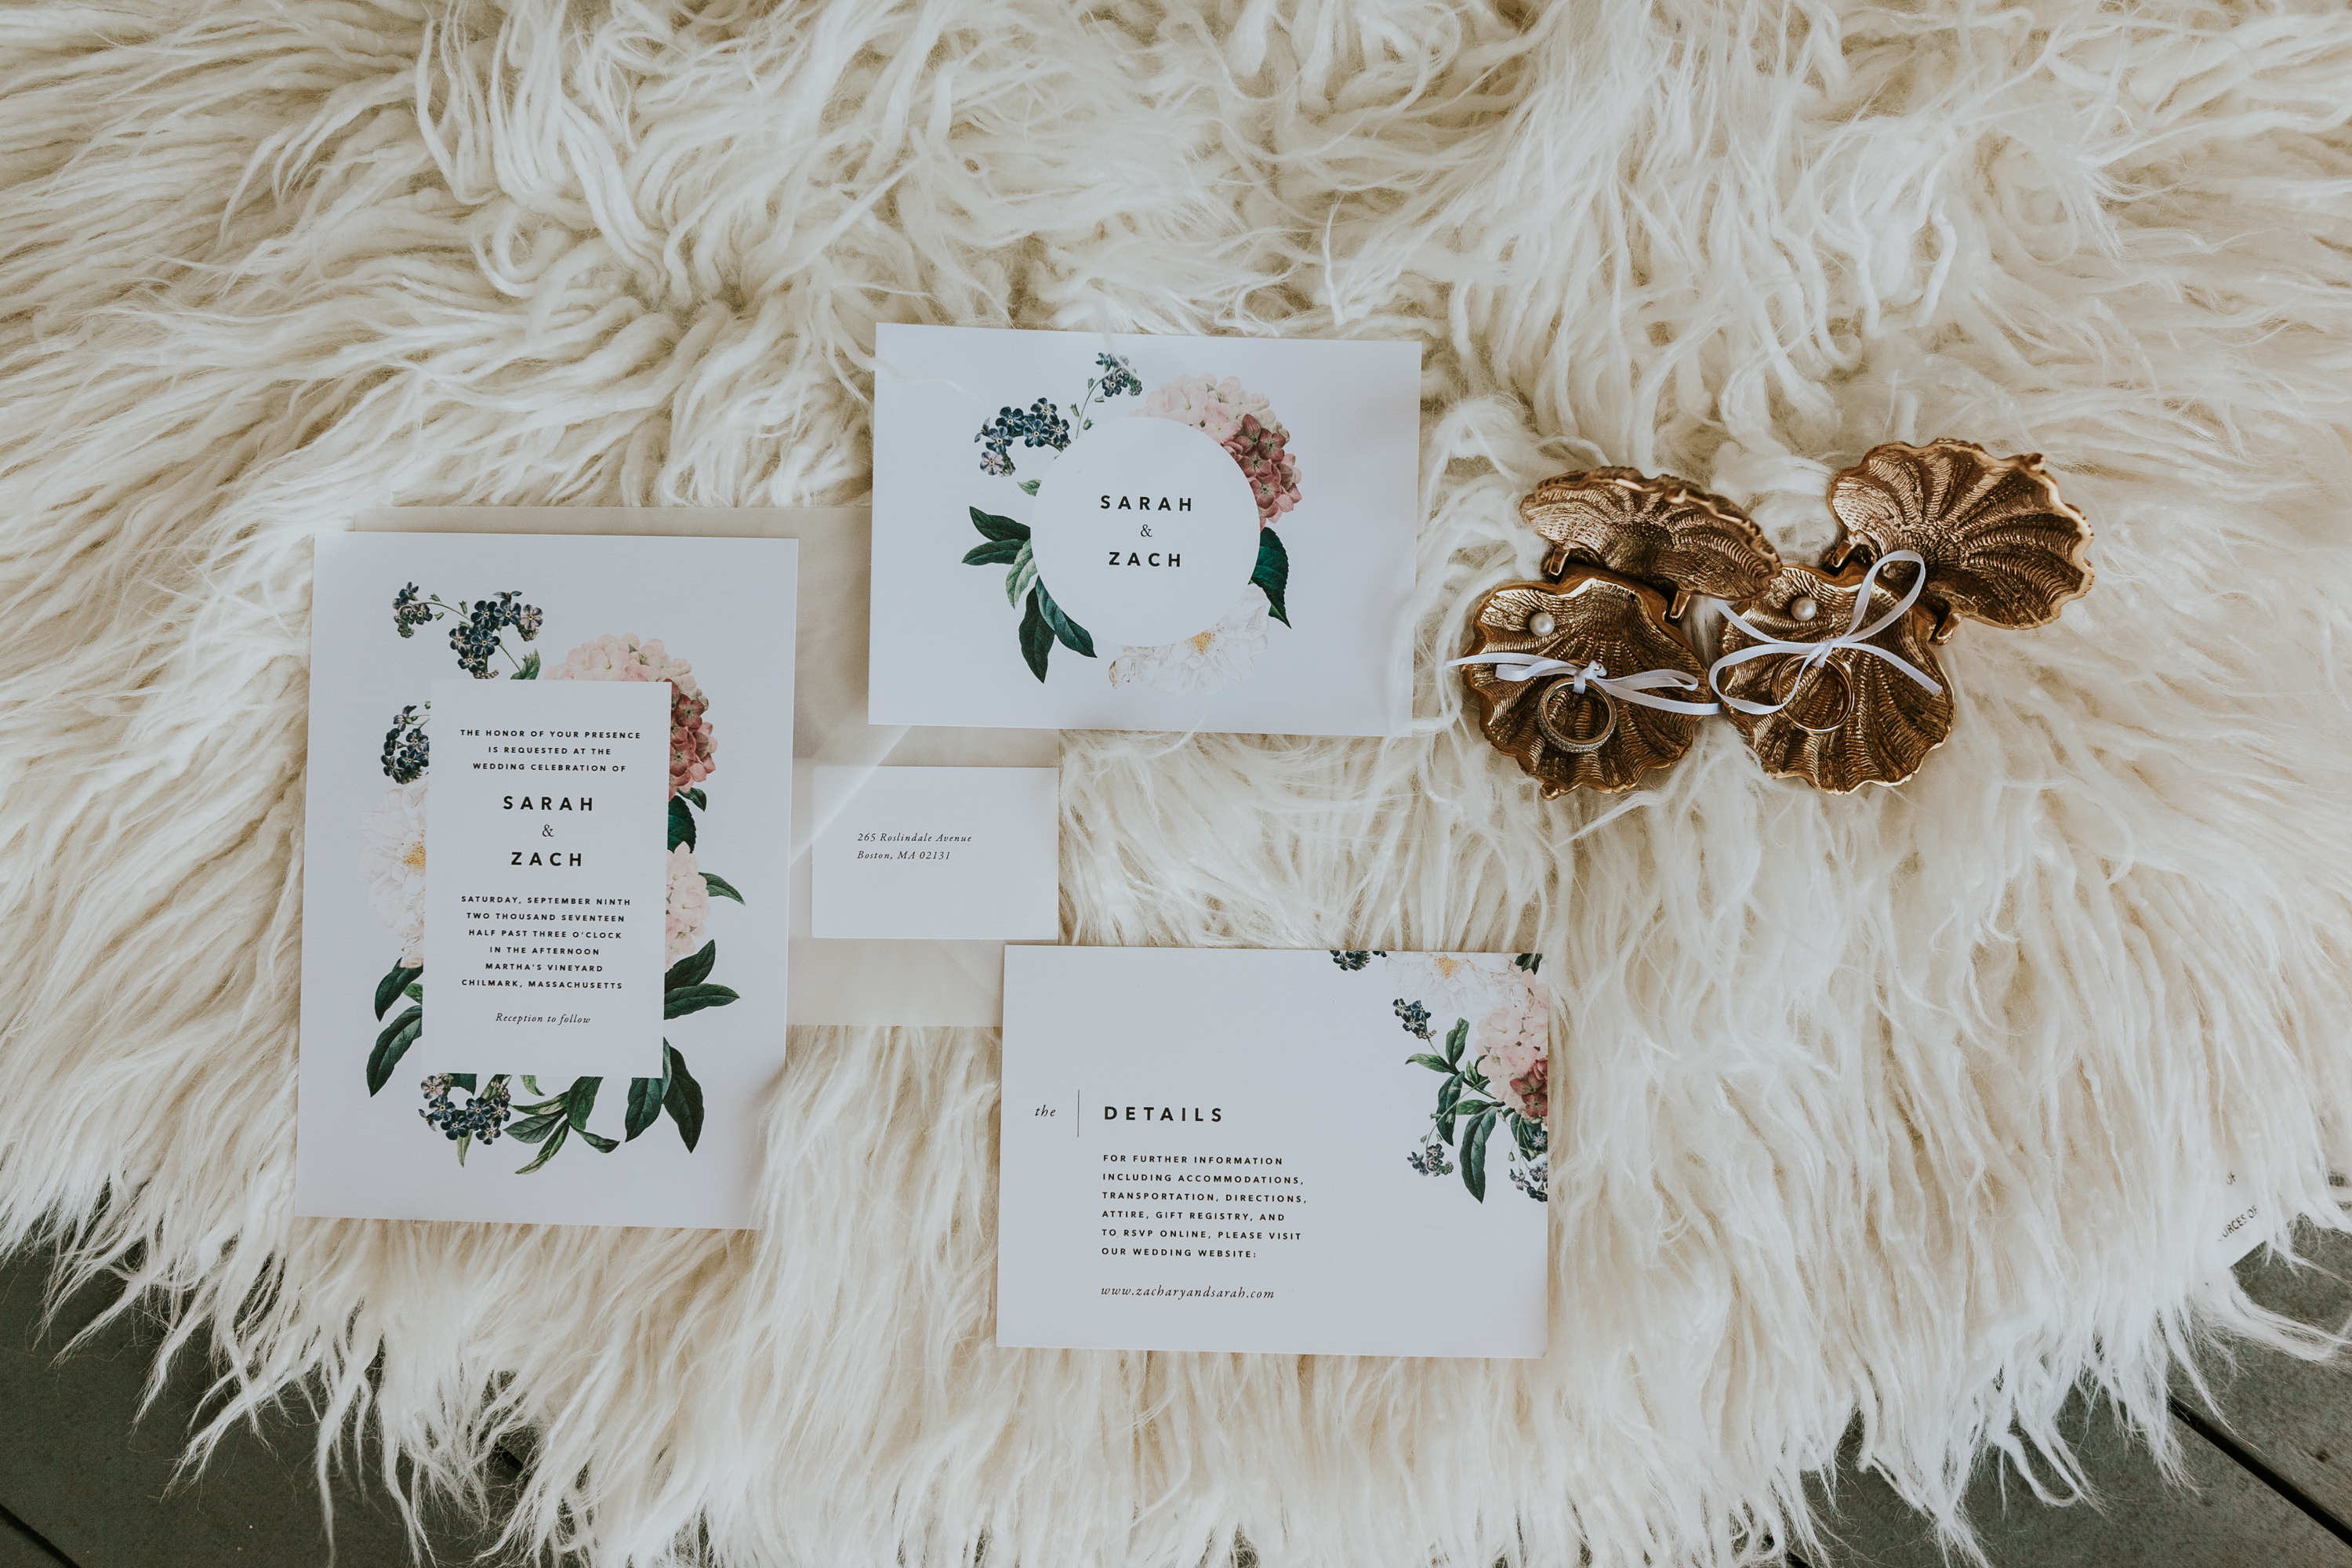 Invitation Suite, sarah and zach wedding invitations, floral invitation suite, wedding day details, floral invites on sheepskin rug, wedding rings in seashell